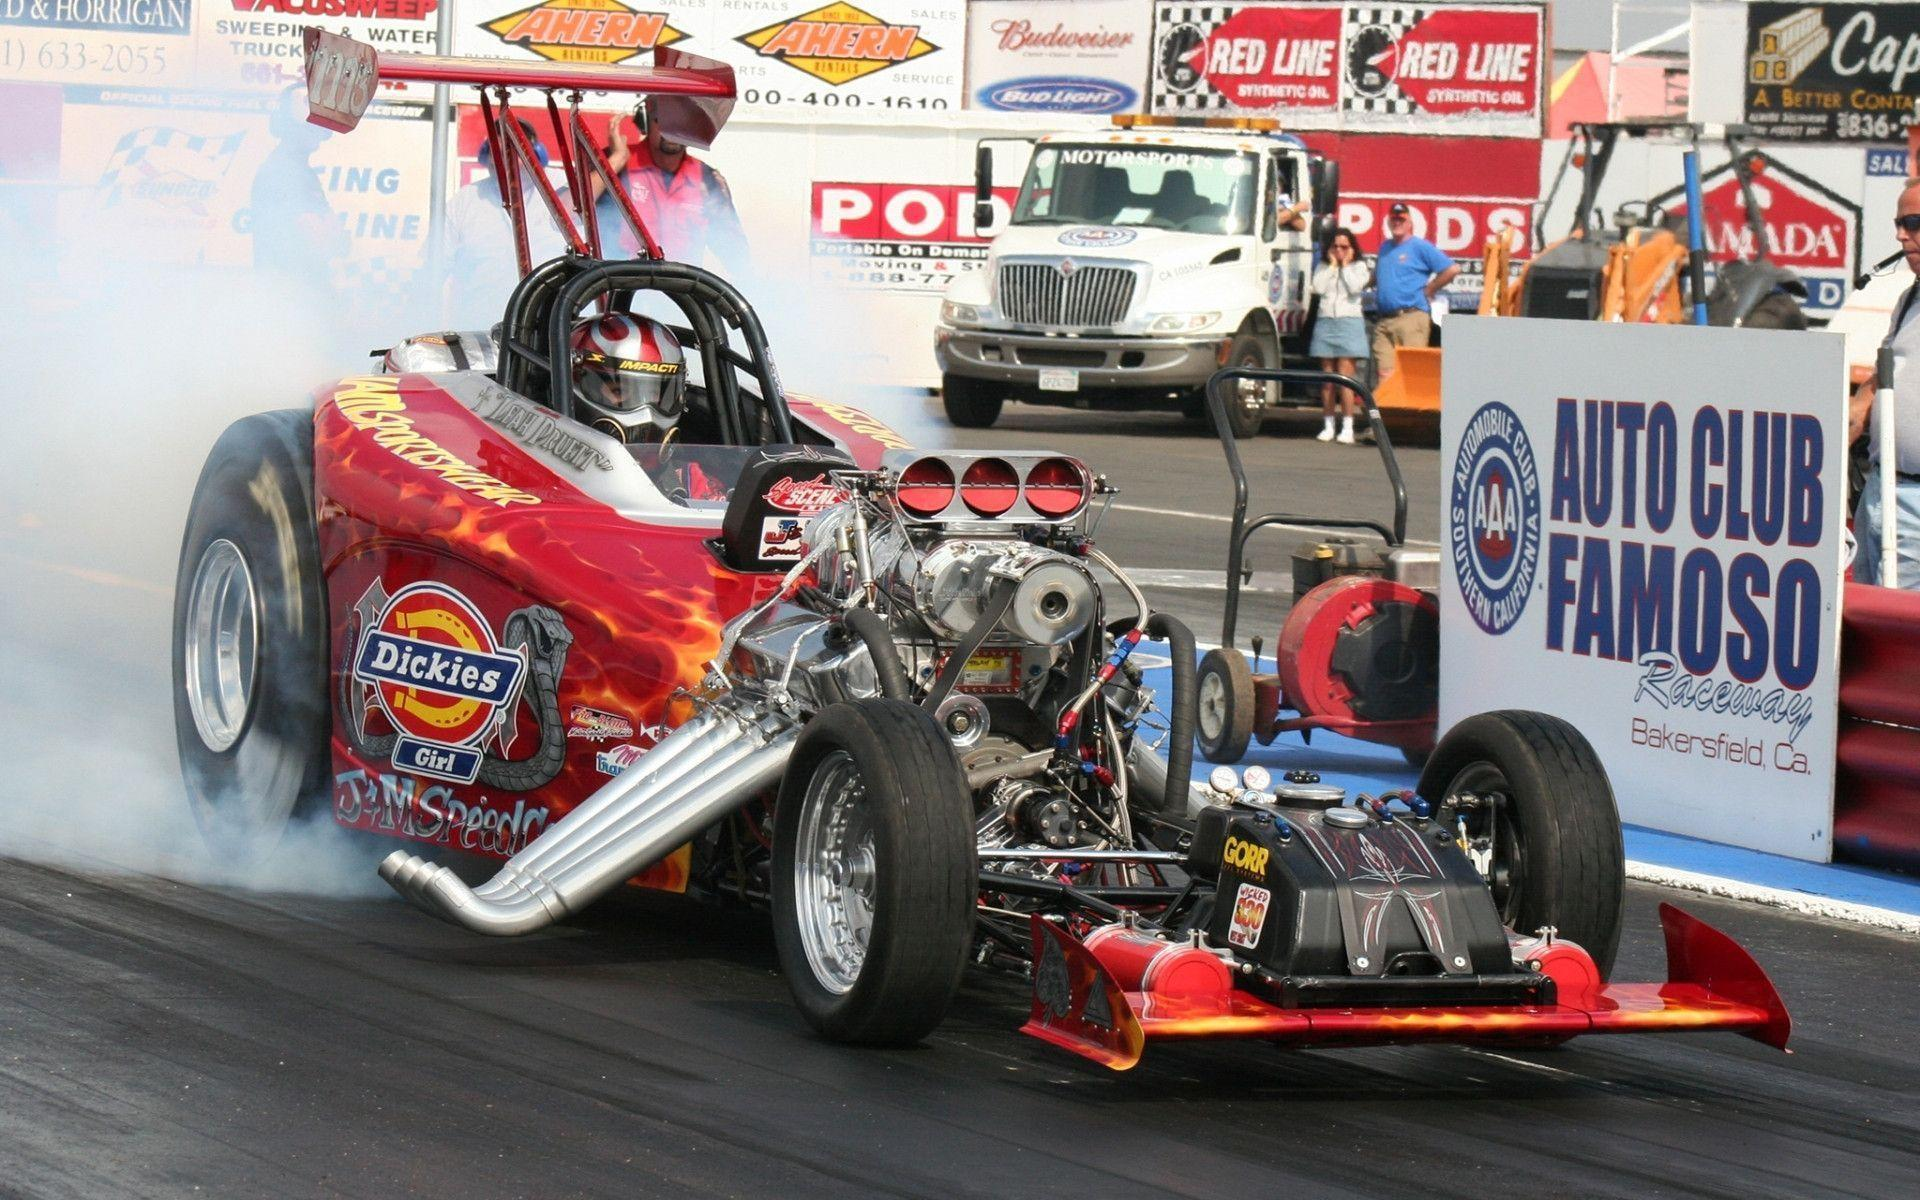 Nhra drag racing track hot rod retro engine cars wallpaper ...